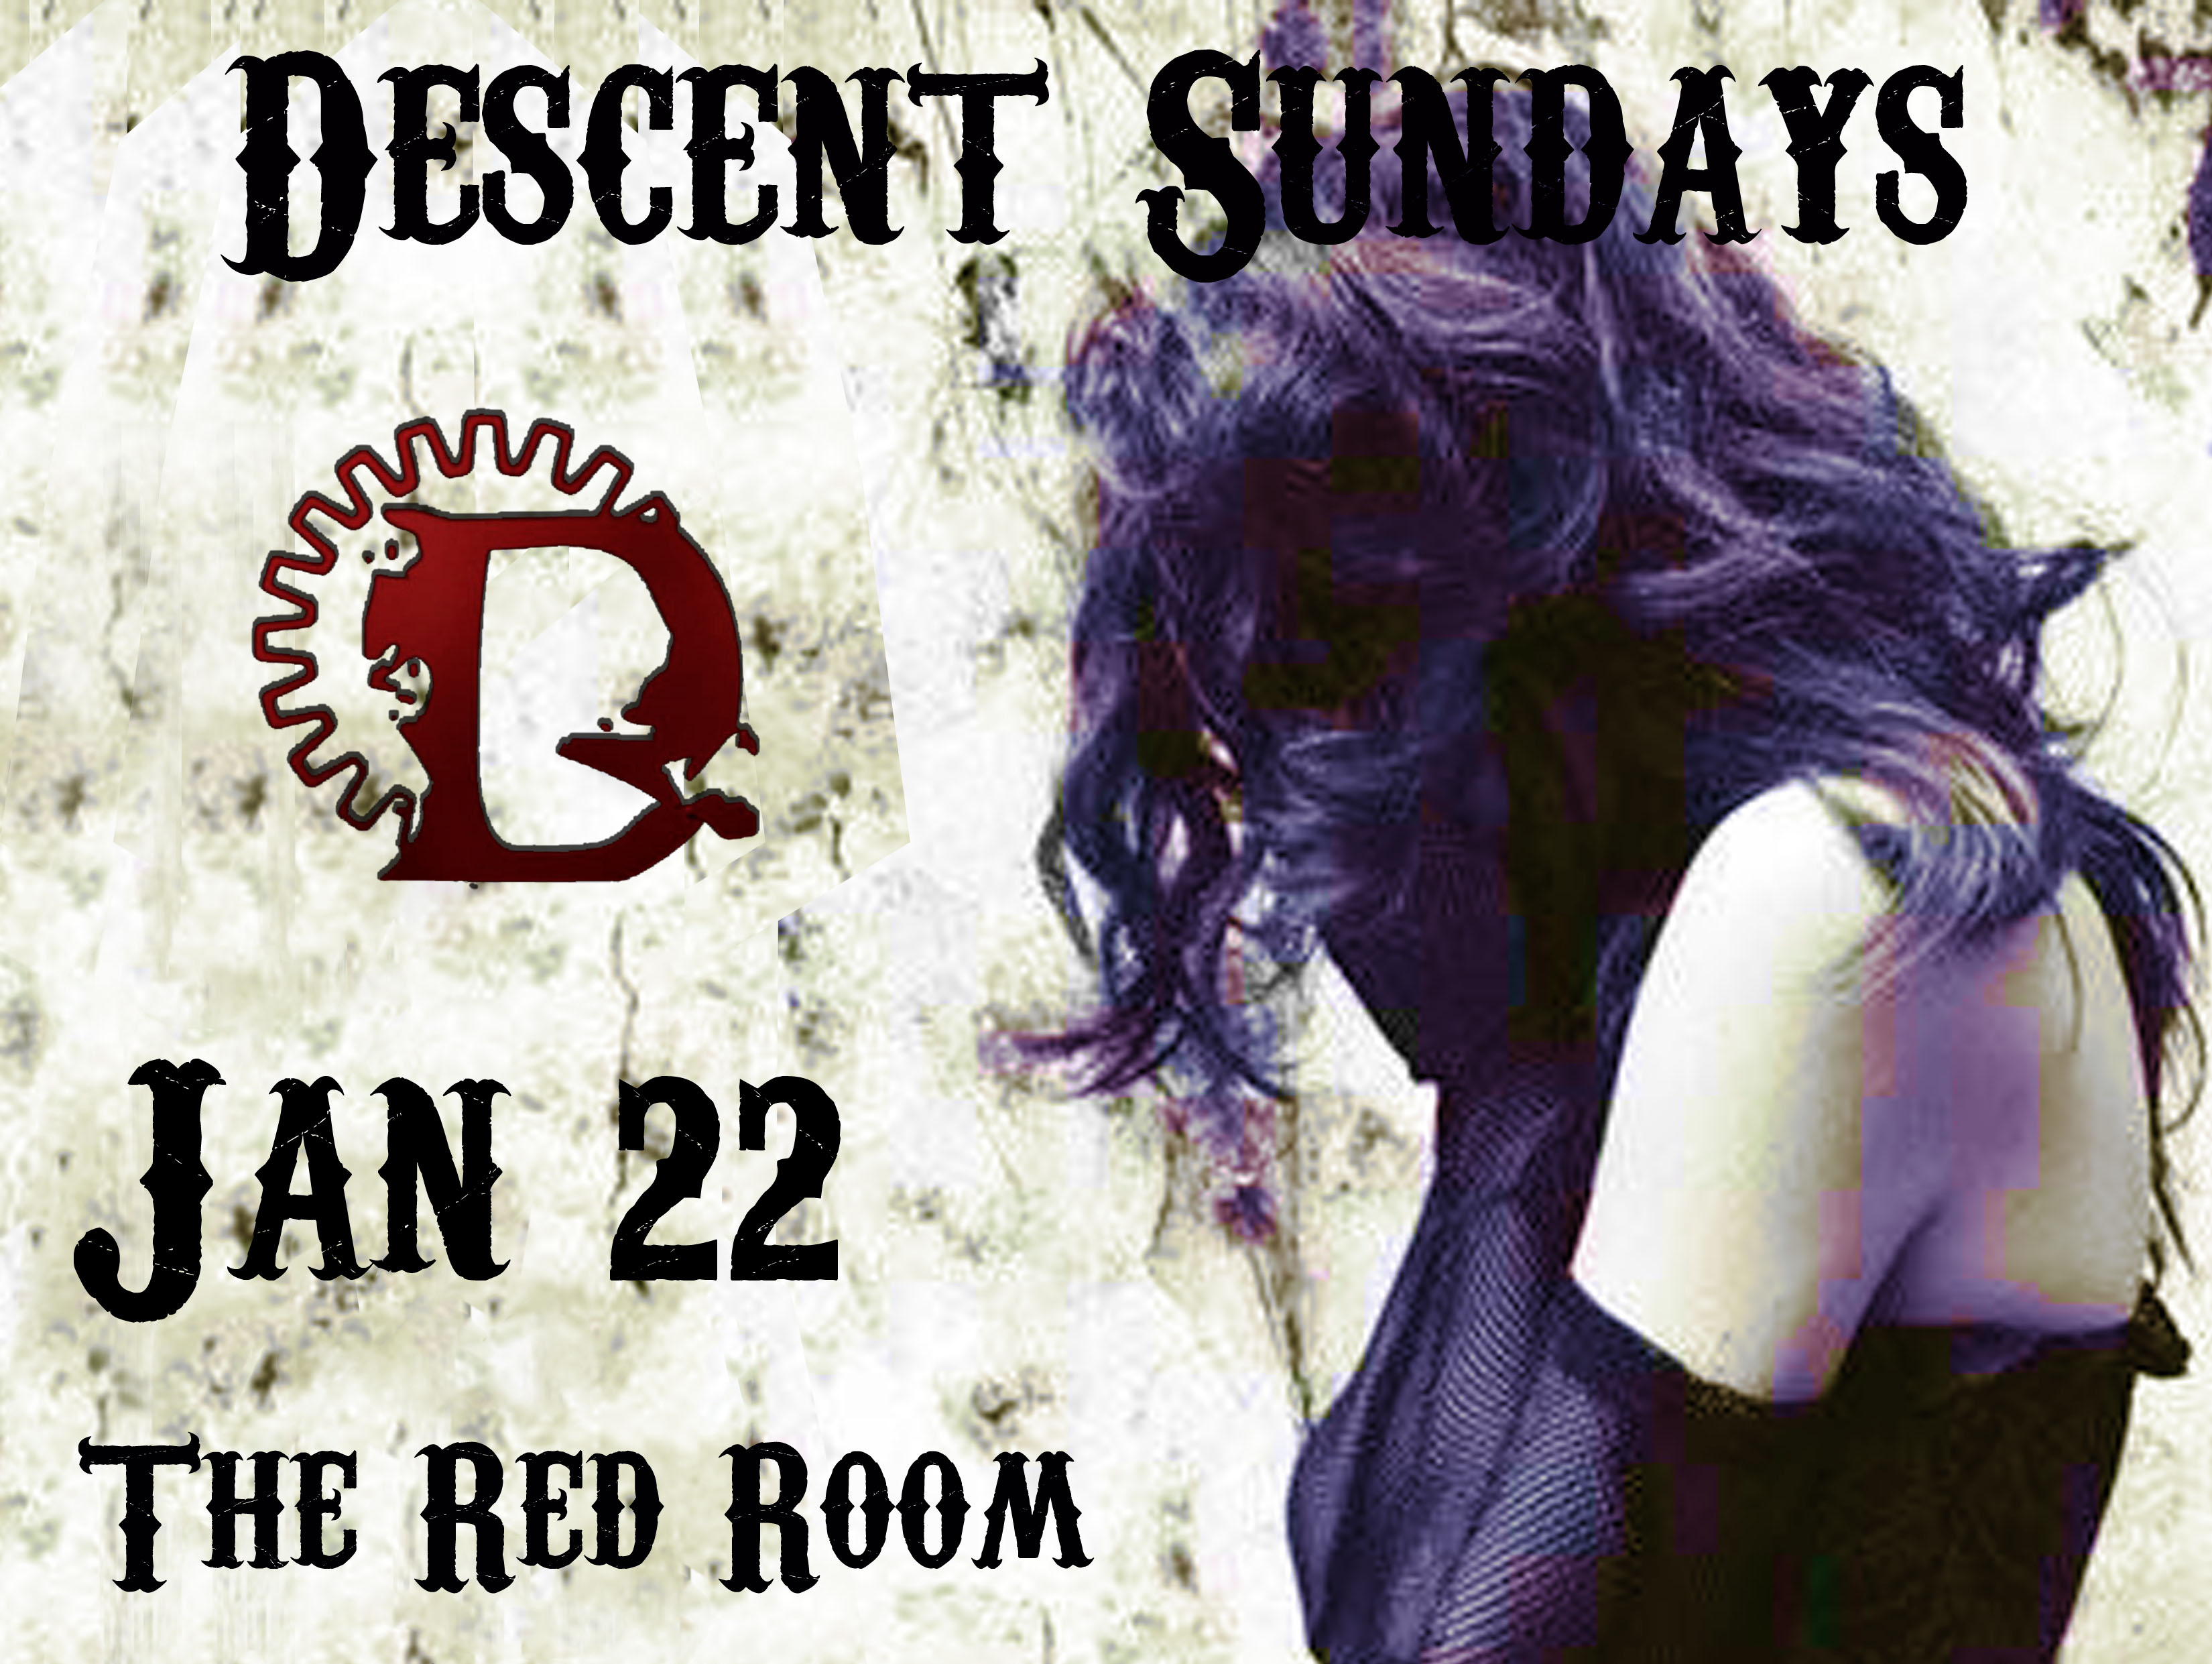 Descent Gothic Winter event on January 22, 2017 @ The Red Room Vancouver